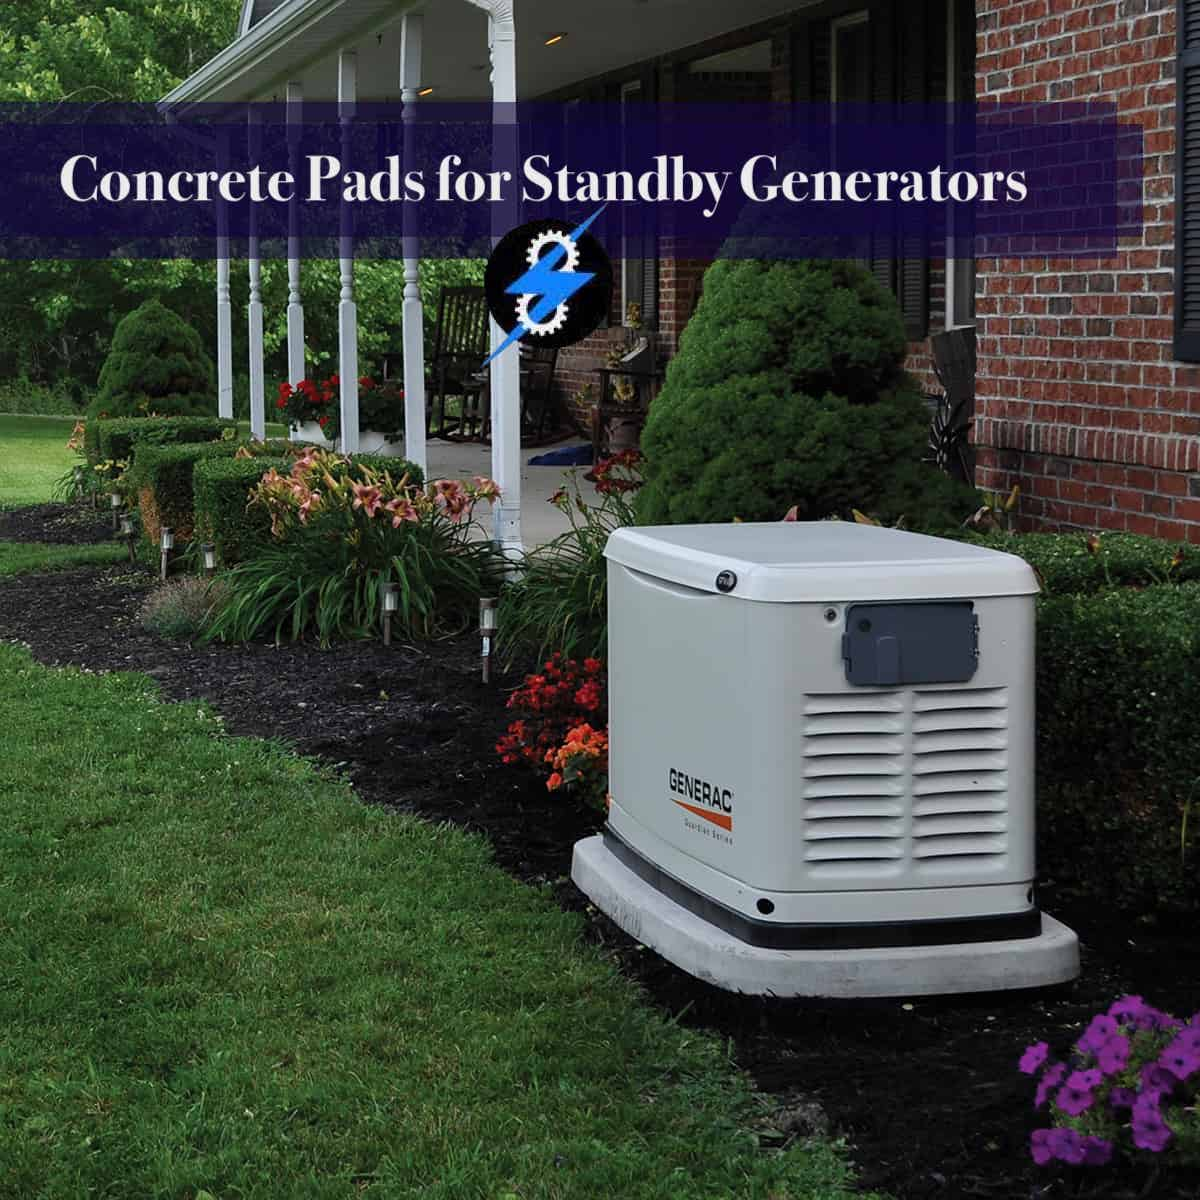 Concrete Pads for Standby Generators